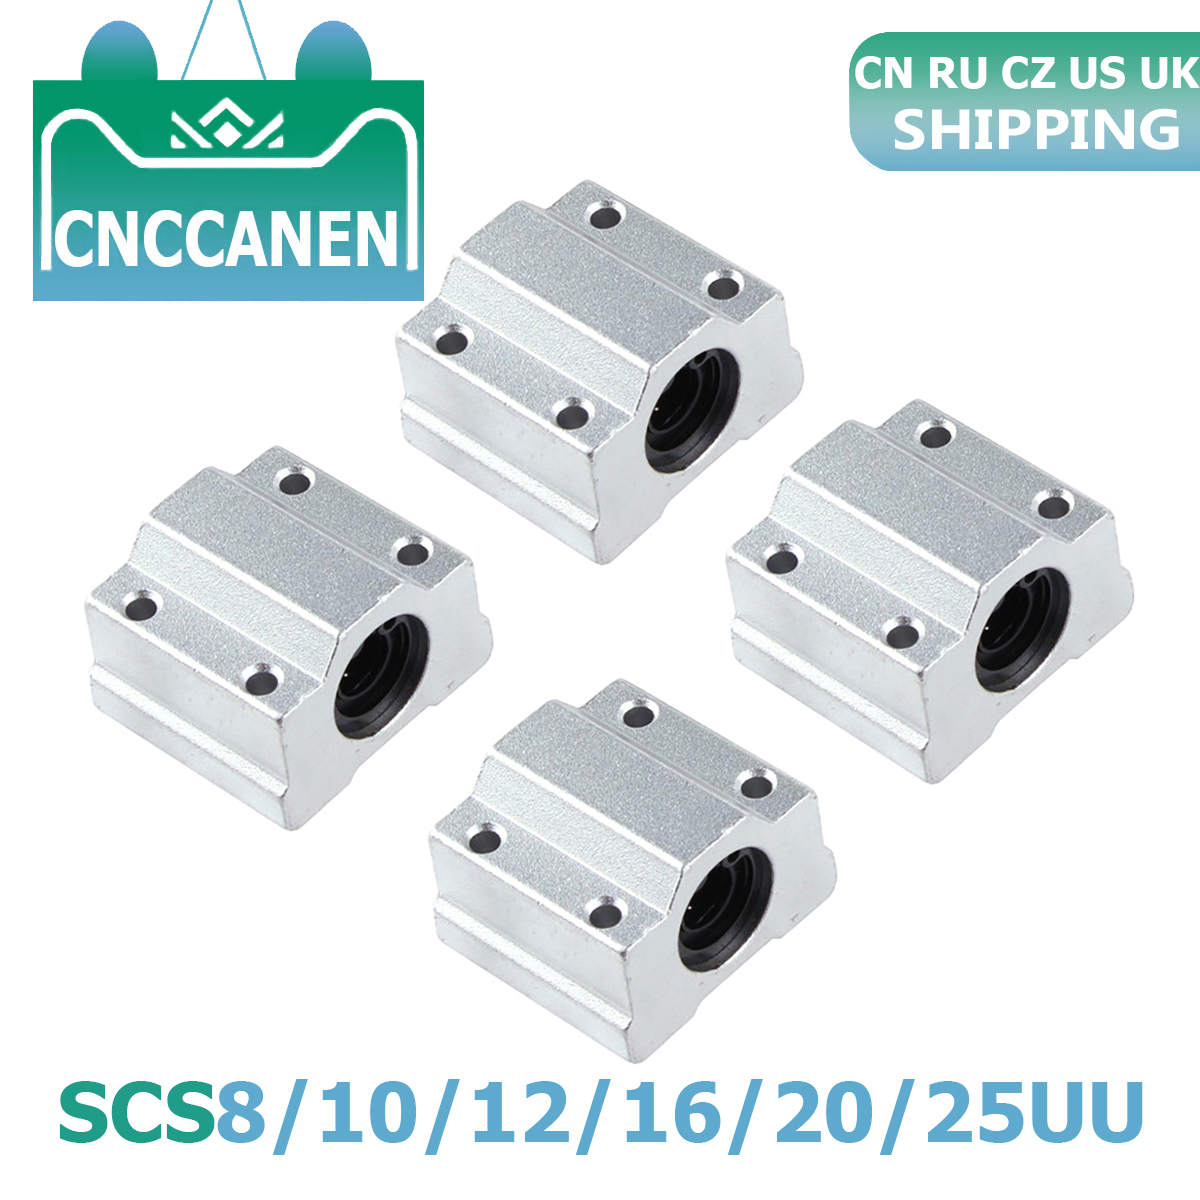 4pcs-linear-motion-ball-bearing-slide-block-bushing-sc8uu-scs8uu-sc10uu-scs12uu-16uu-20uu-25uu-linear-shaft-cnc-3d-printer-parts